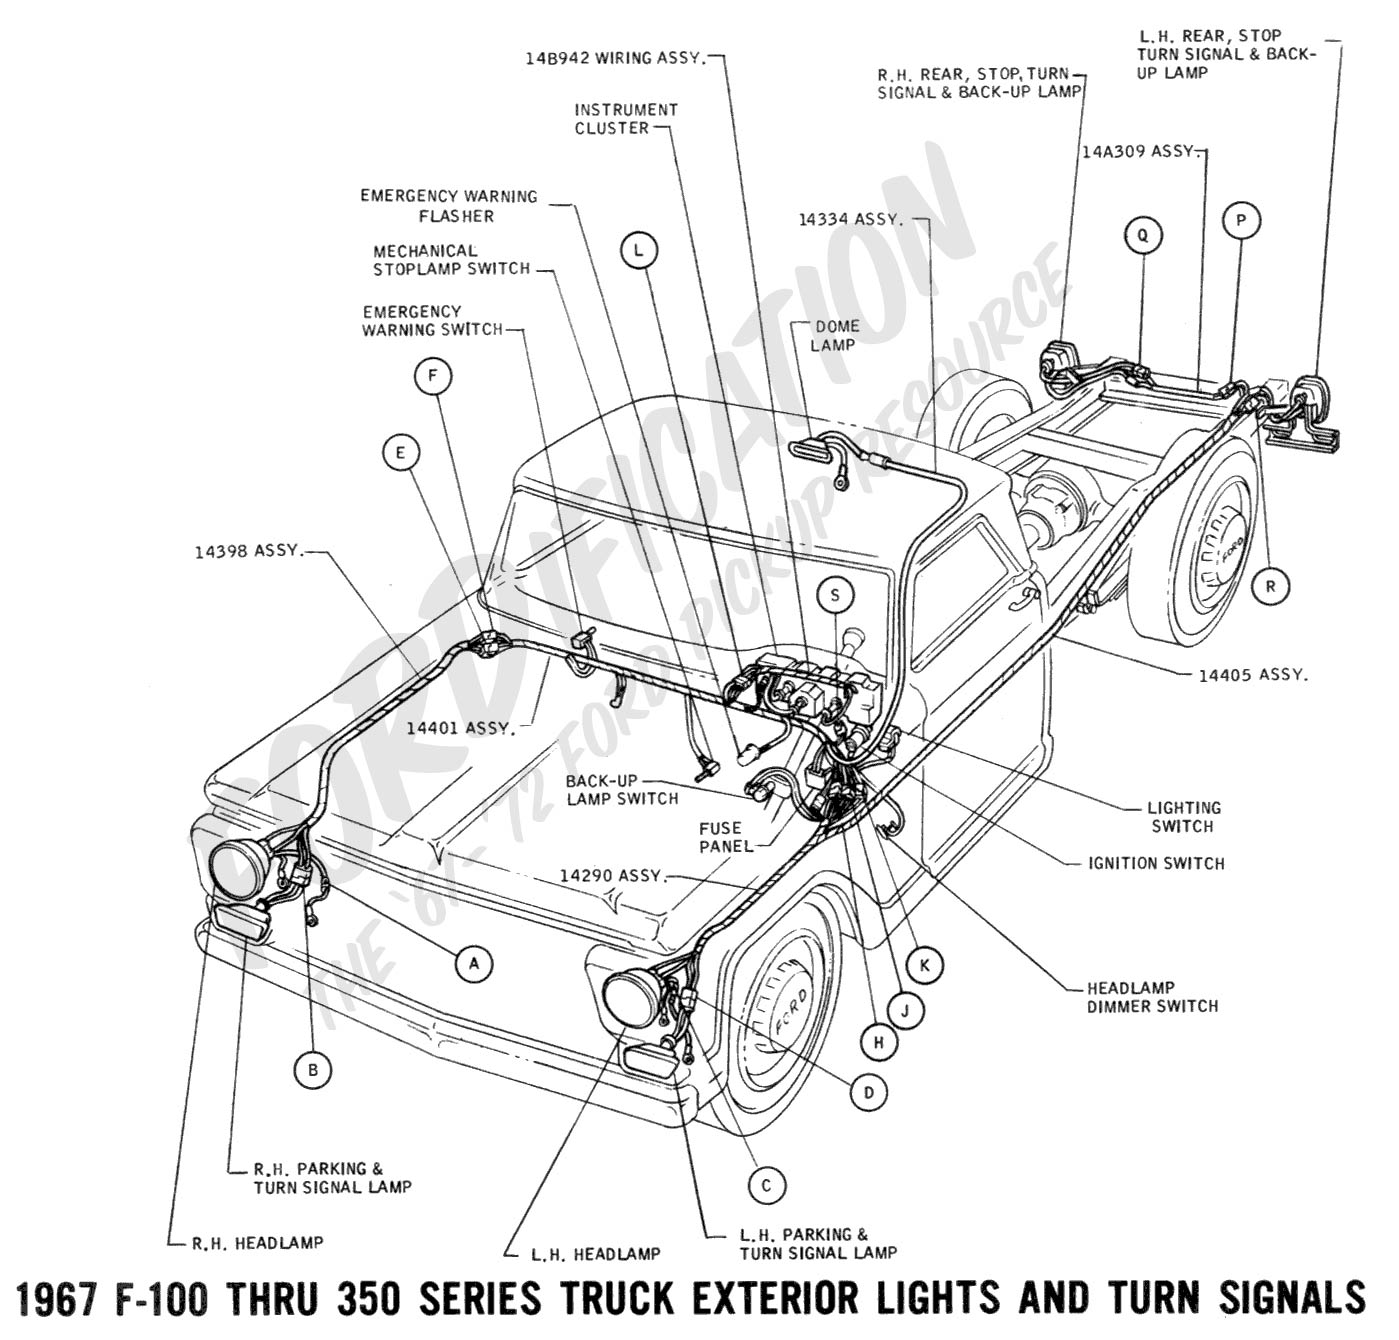 hight resolution of ford ranger fuel system diagram wiring diagram today 1988 ford ranger fuel system diagram